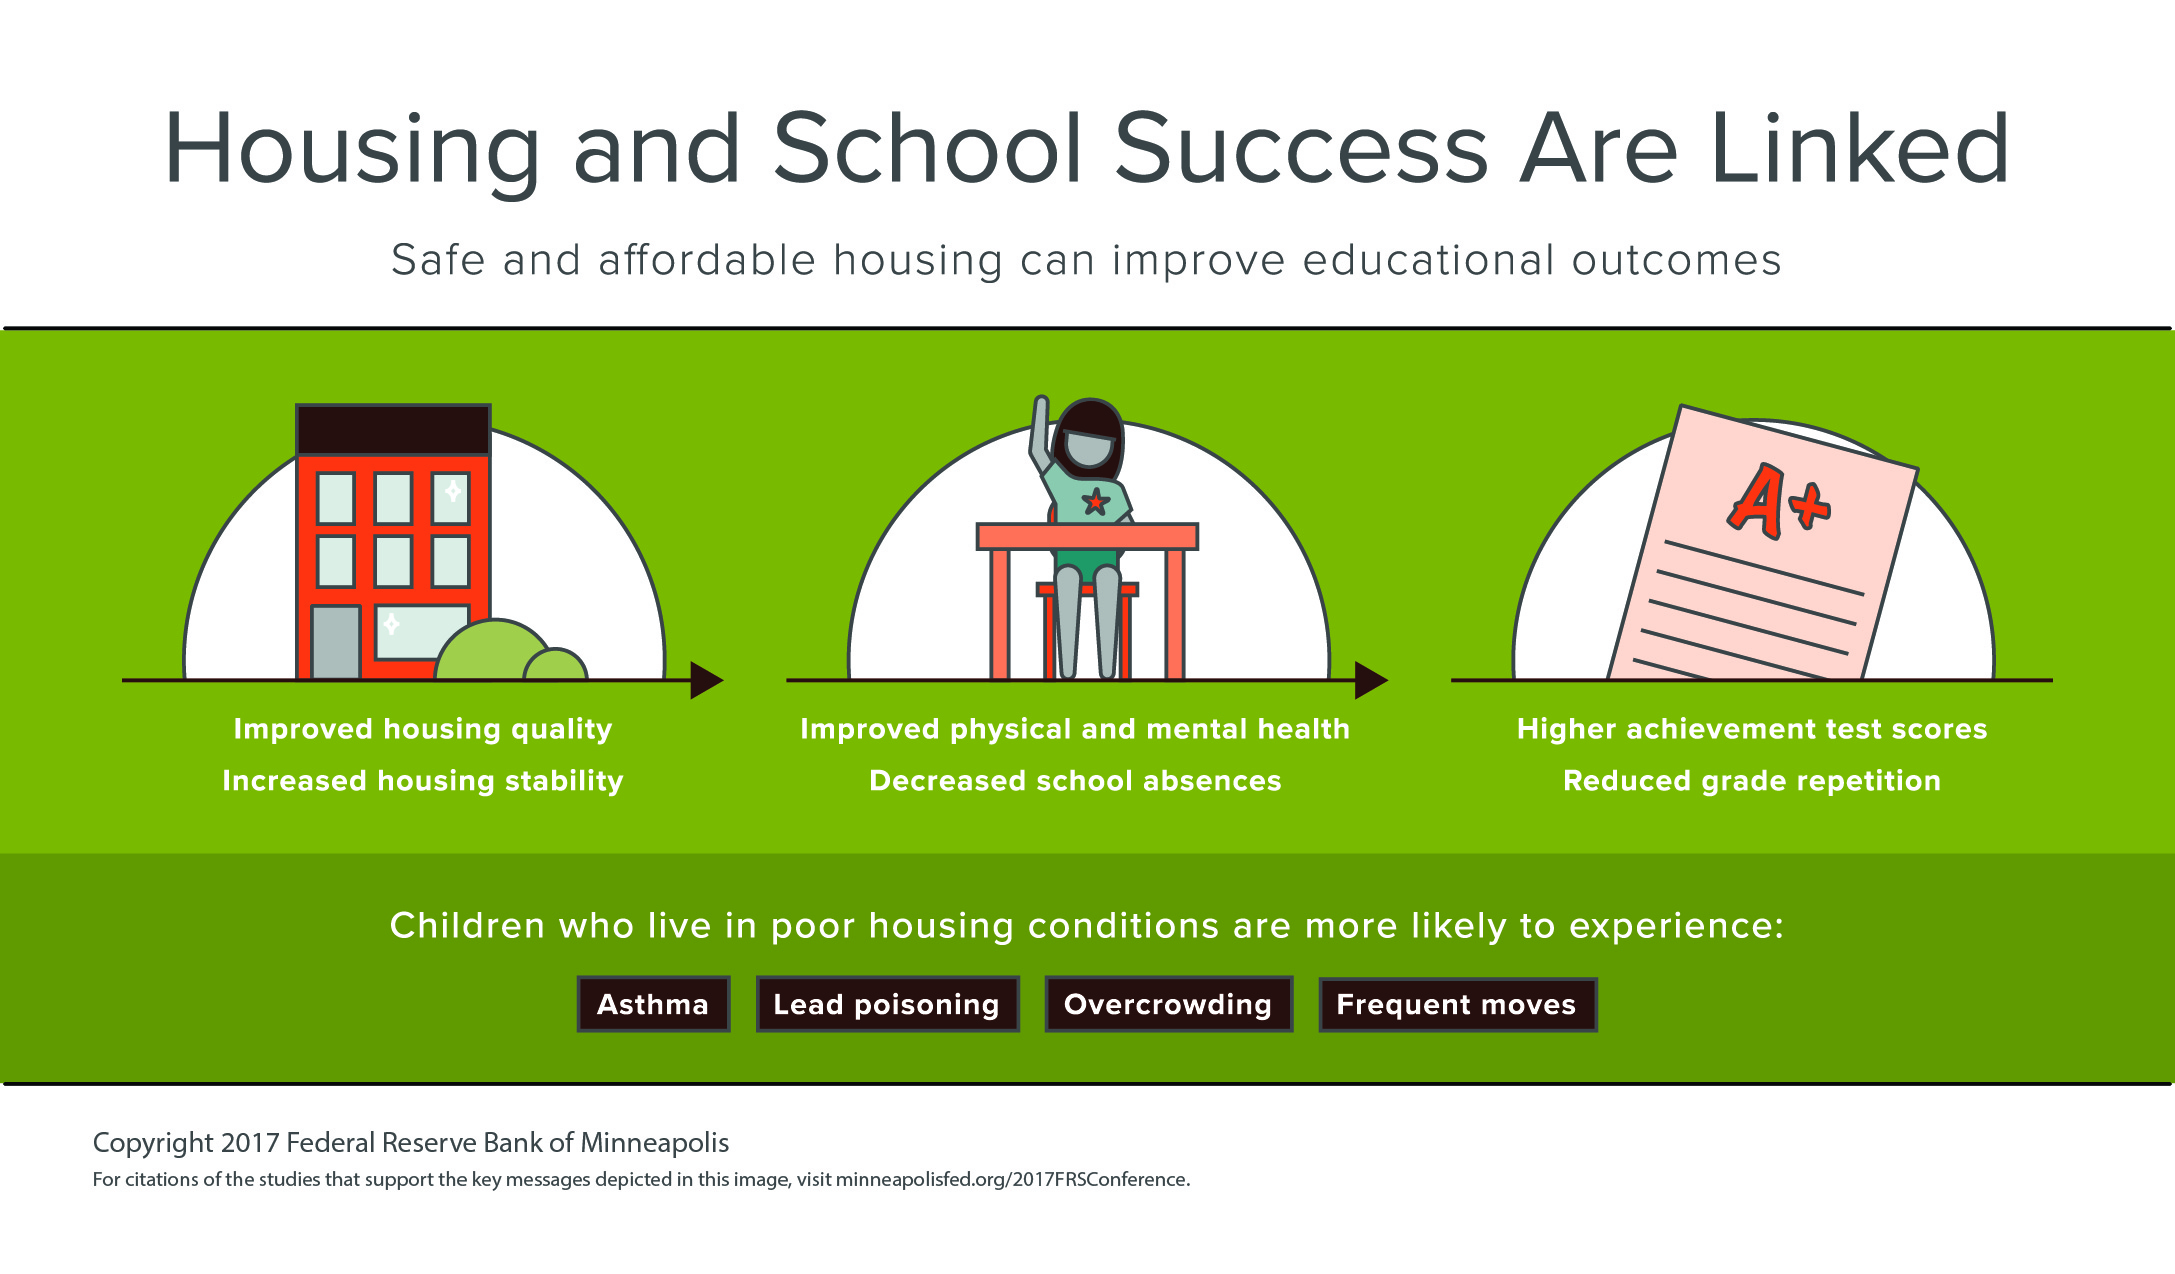 Housing and School Success